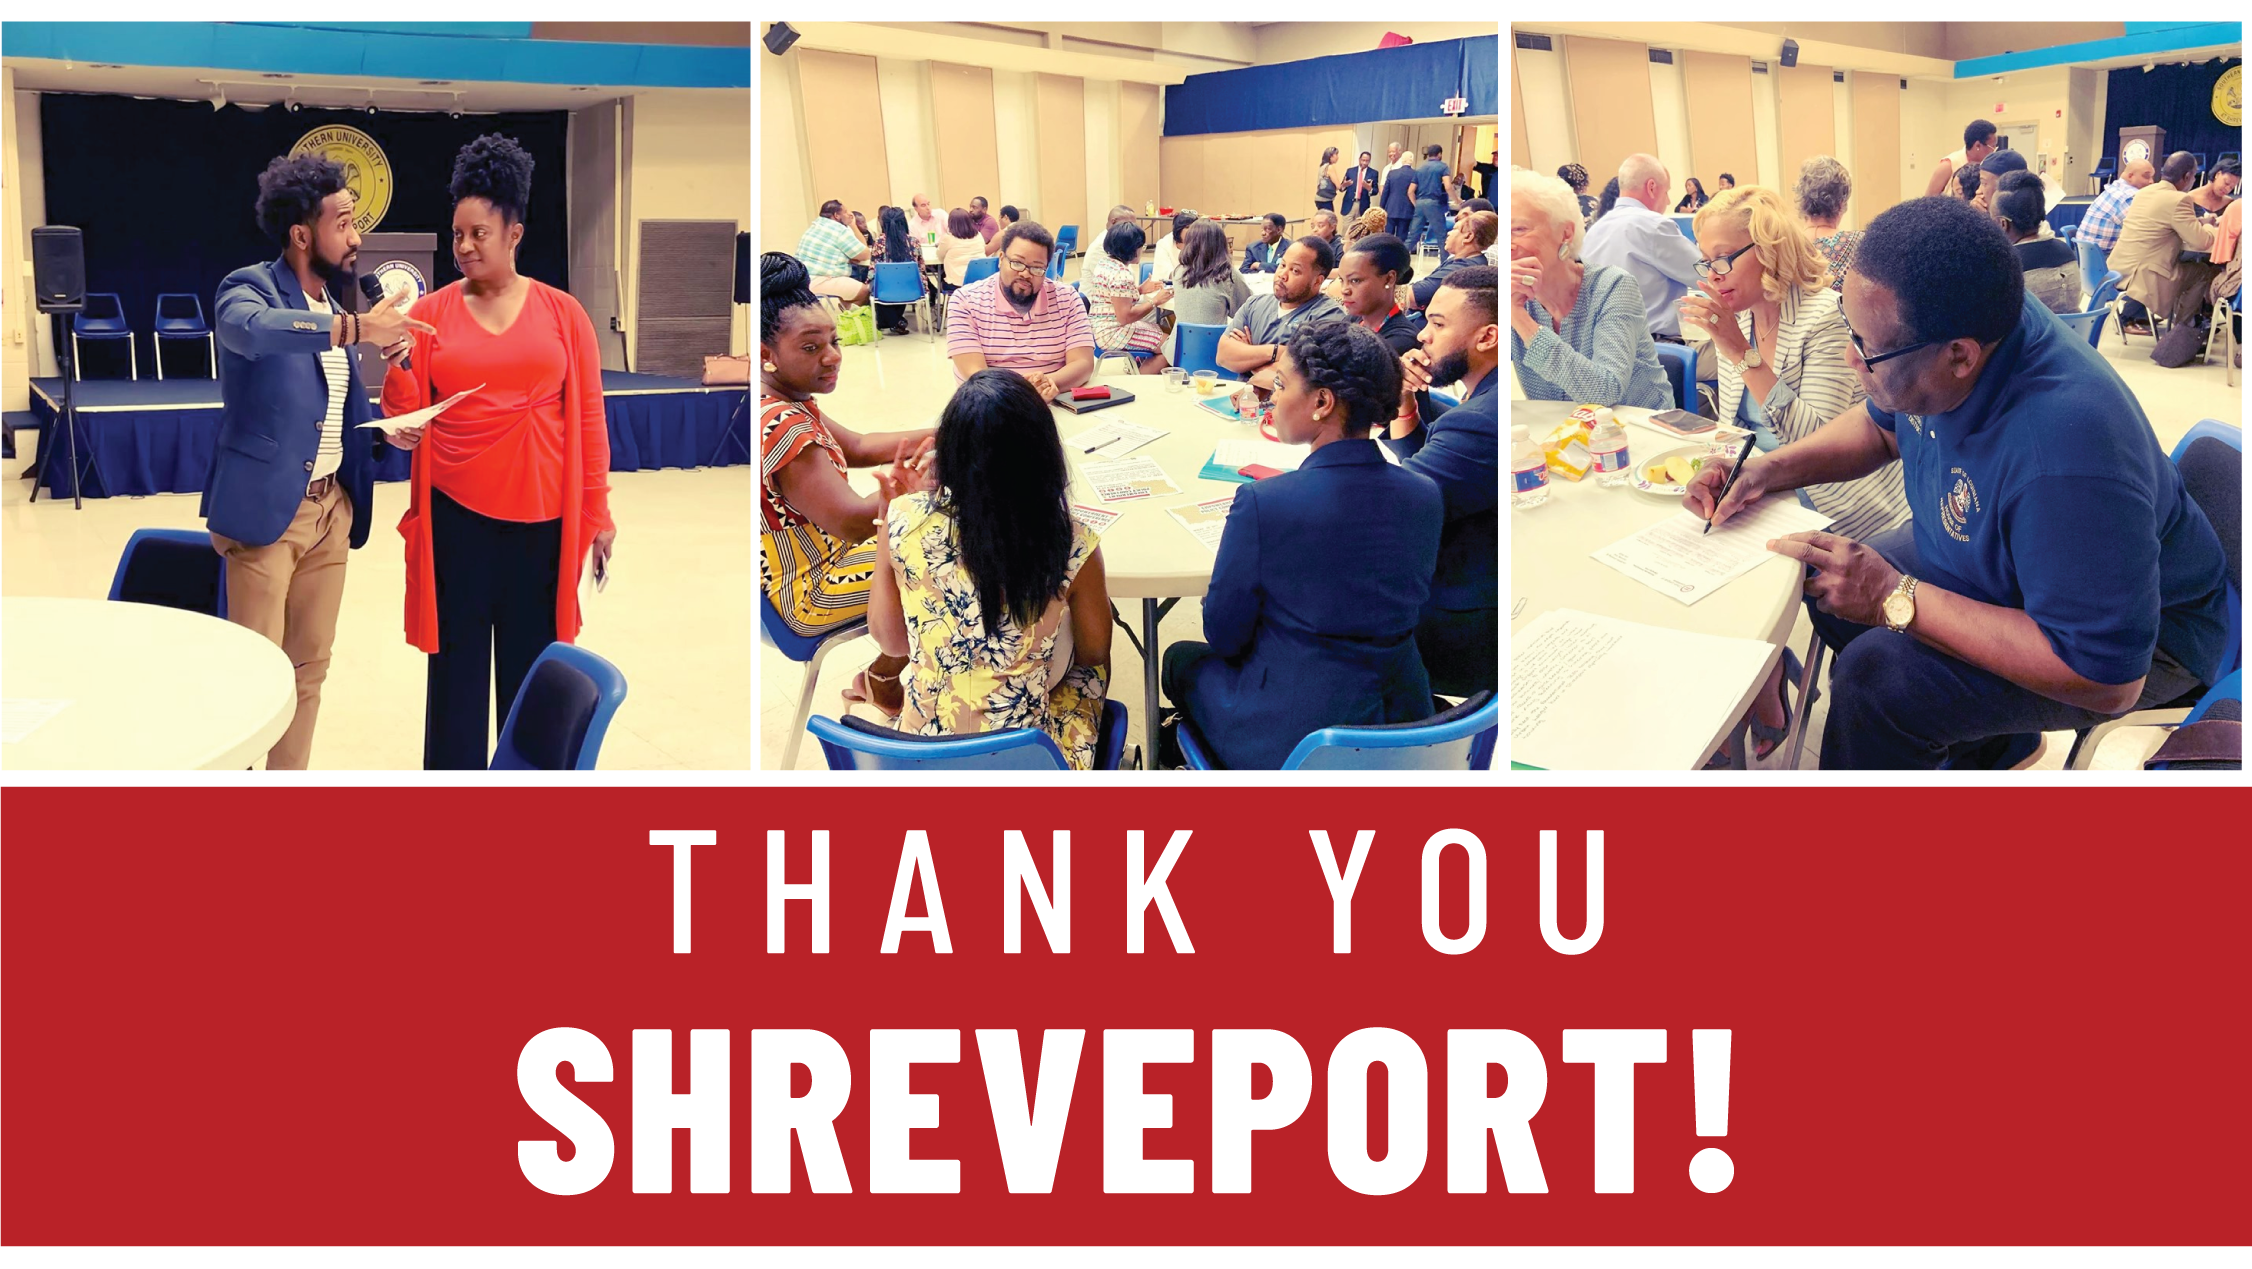 Thank you Shreveport